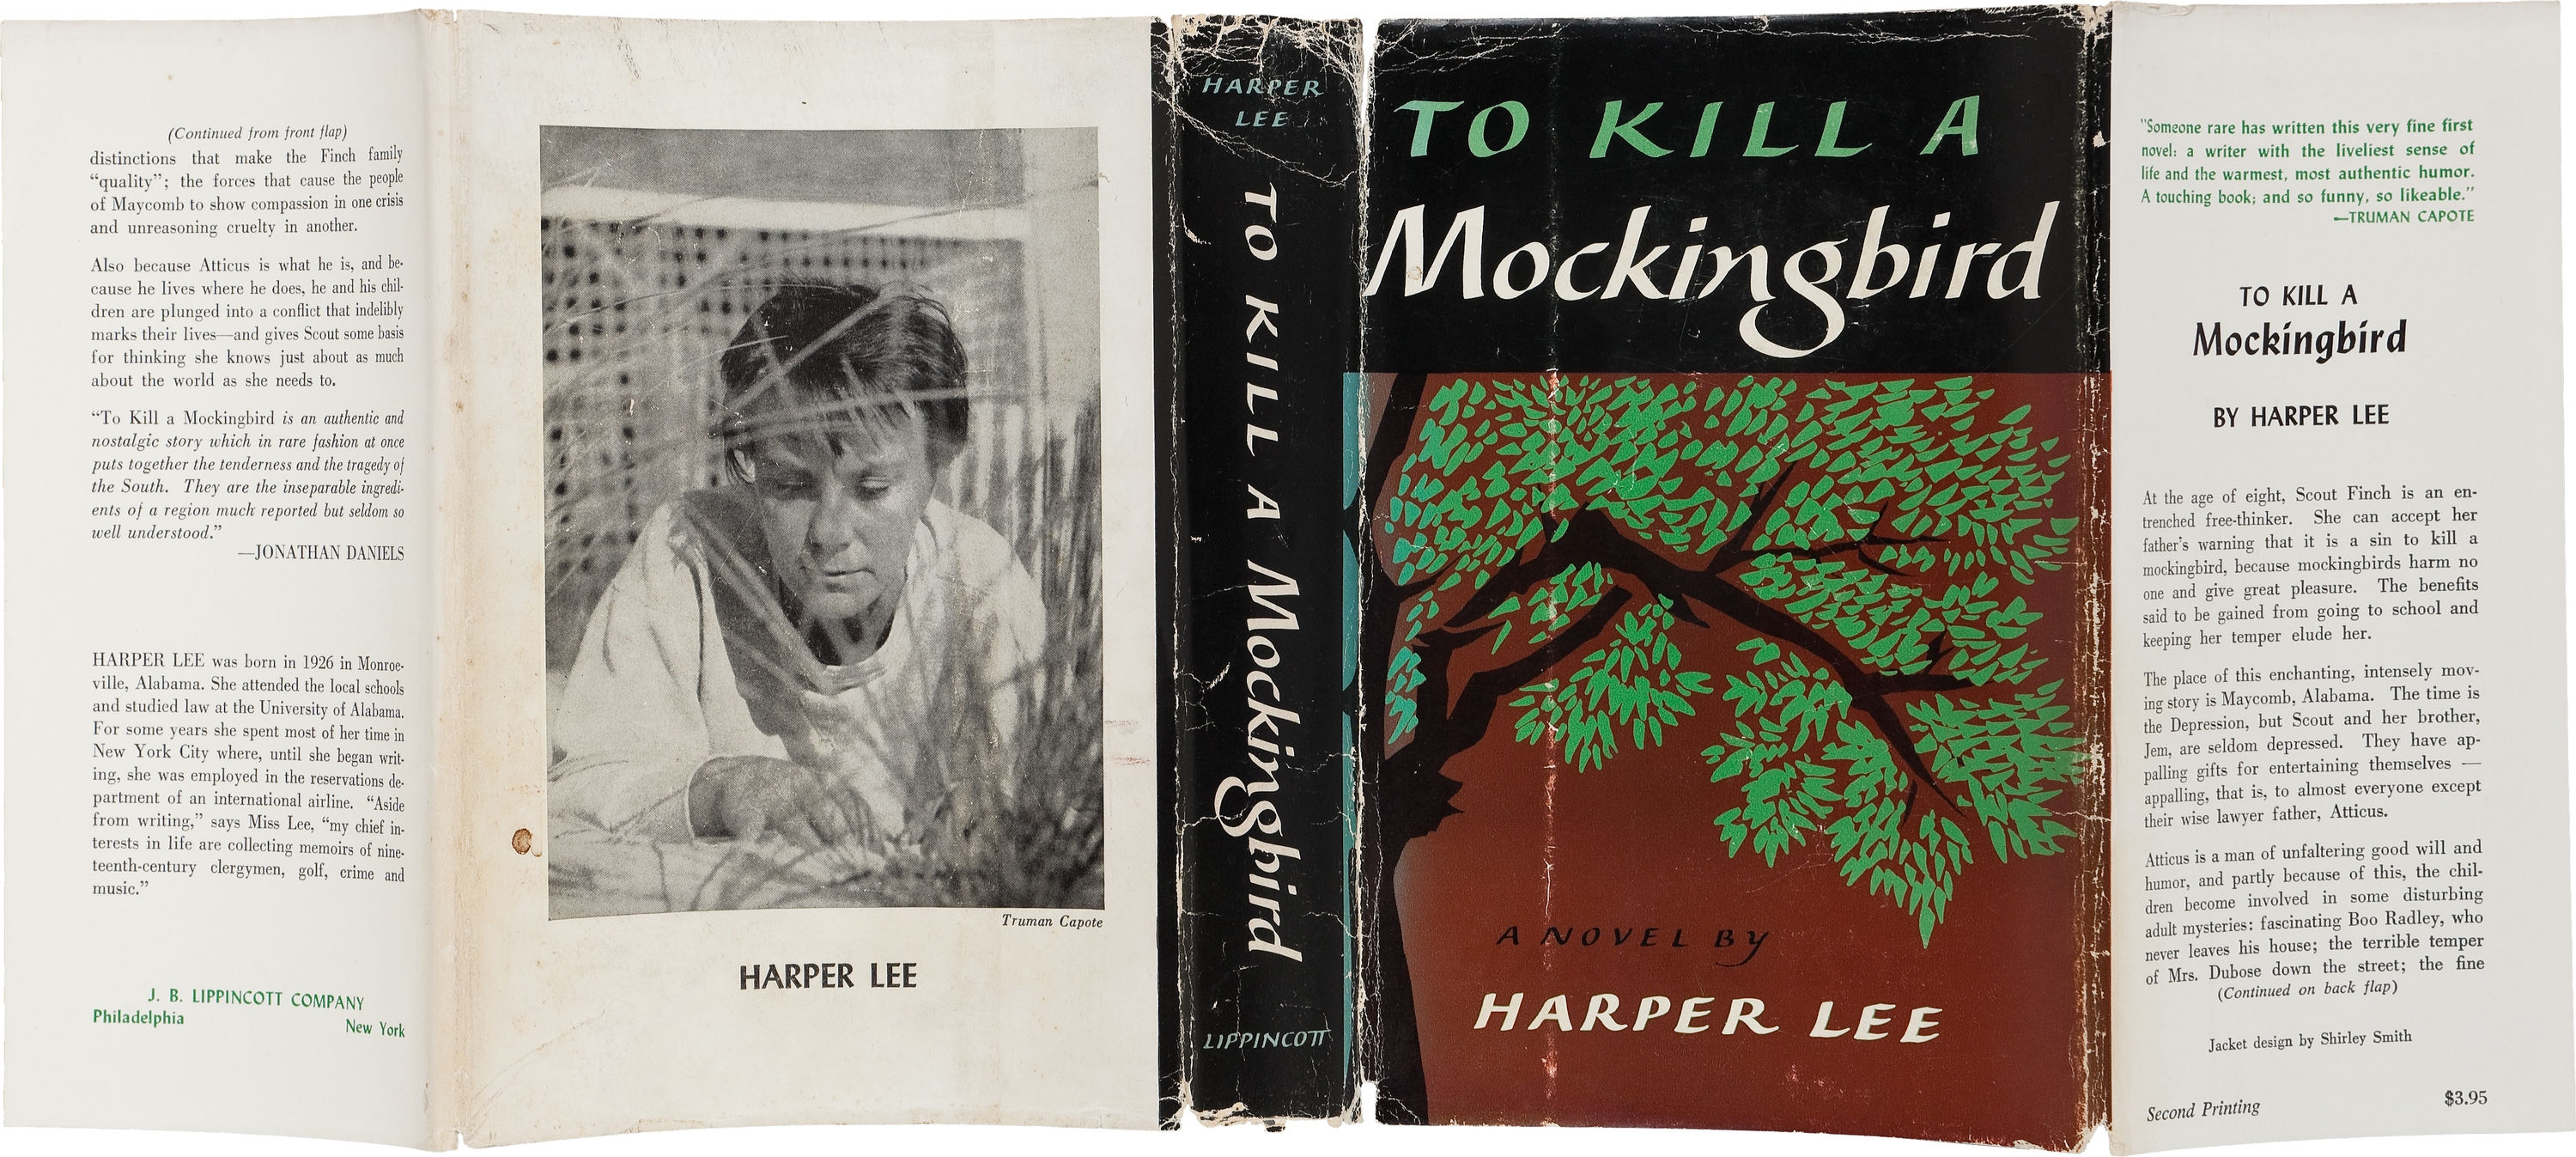 To Kill A Mockingbird first edition cover